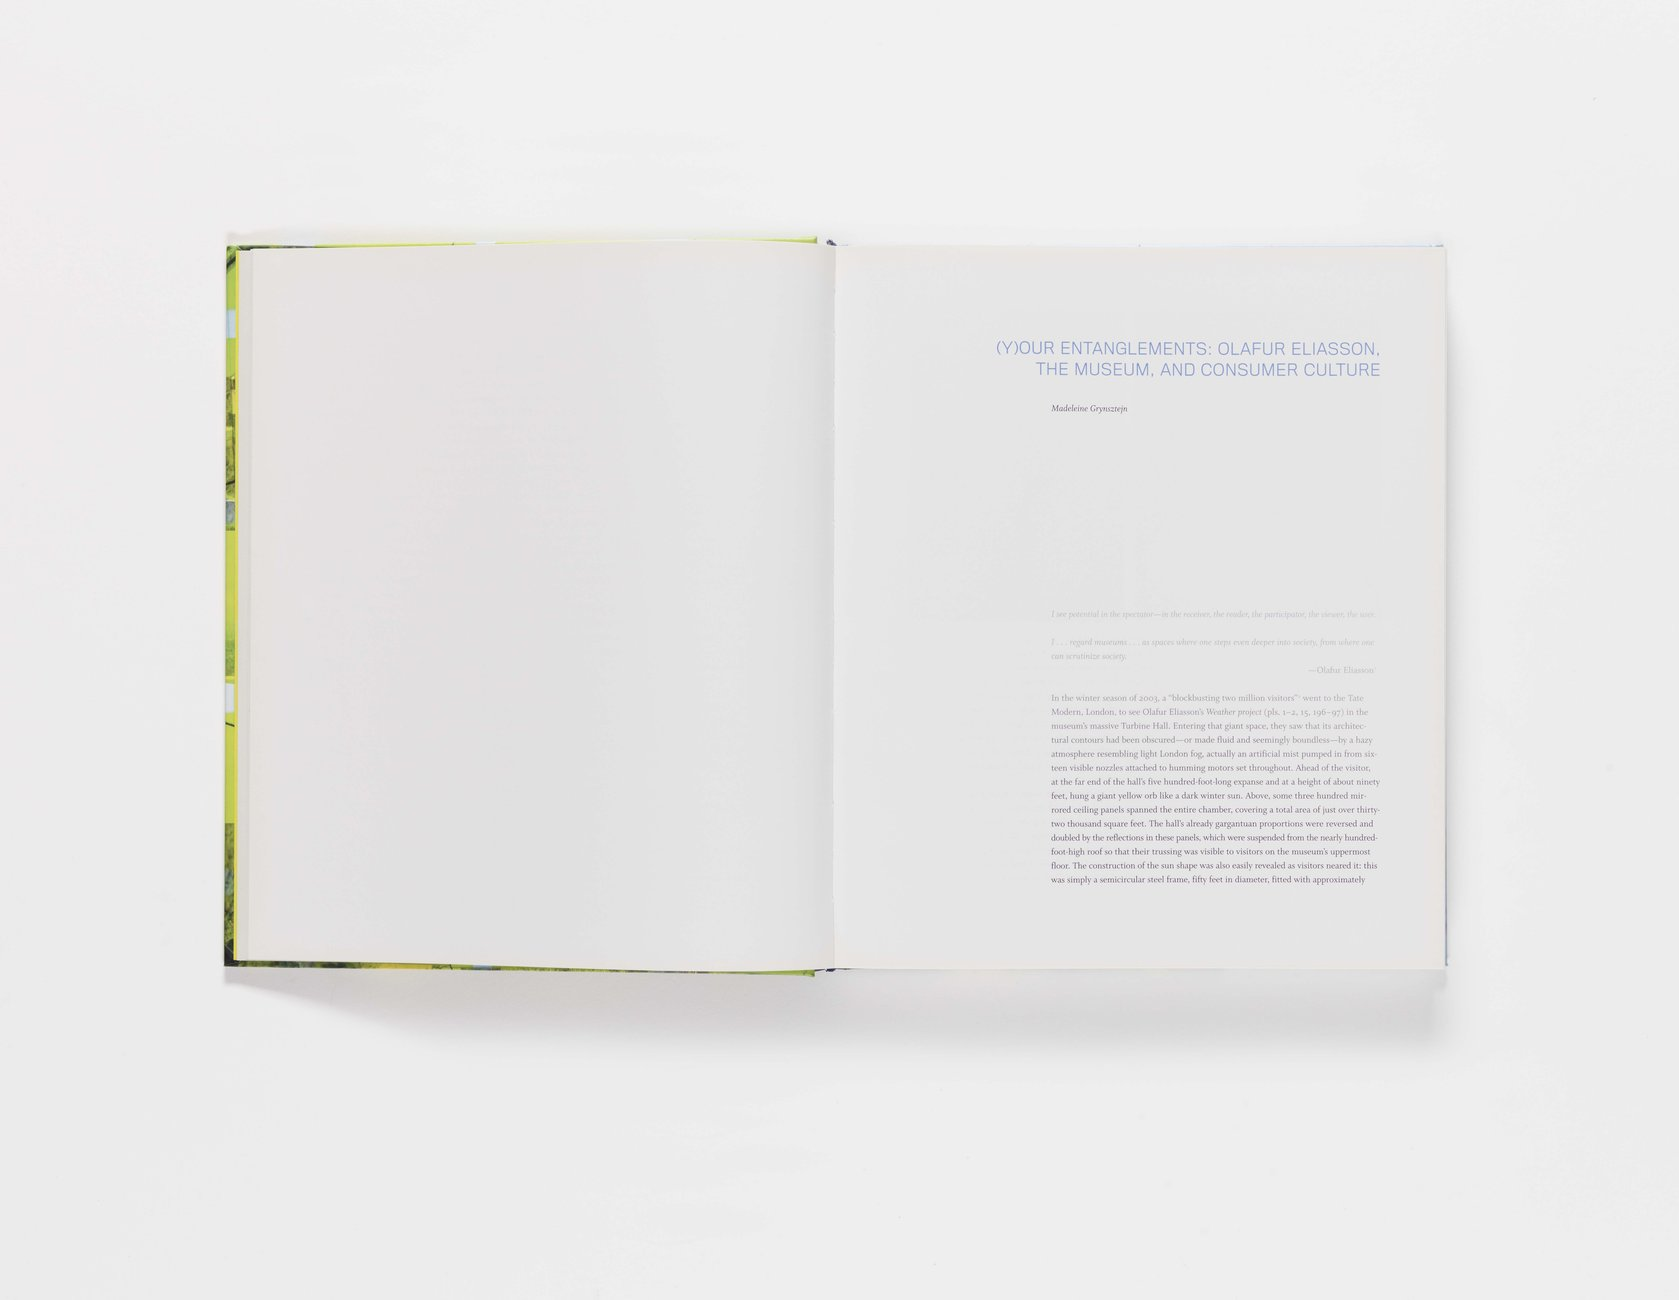 Take Your Time: Olafur Eliasson publication pages 10-11